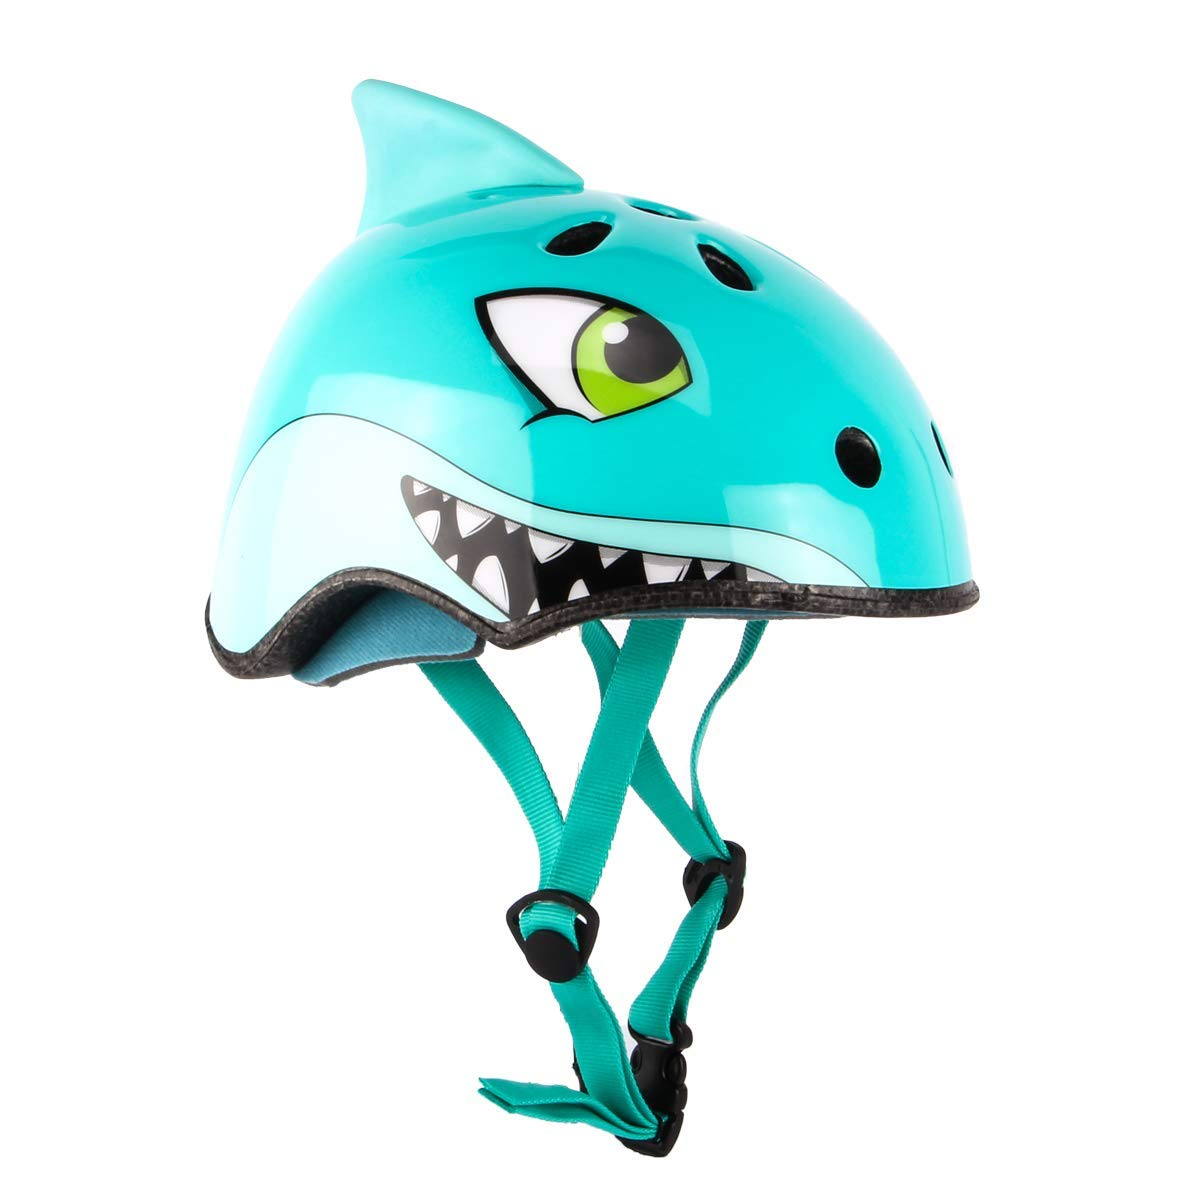 fb64f6aa94a Get Quotations · KING SHOWDEN Kids Bike Helmet Children's Multi-Sports Cycling  Helmet Skating Scooter Roller Skate Skateboarding